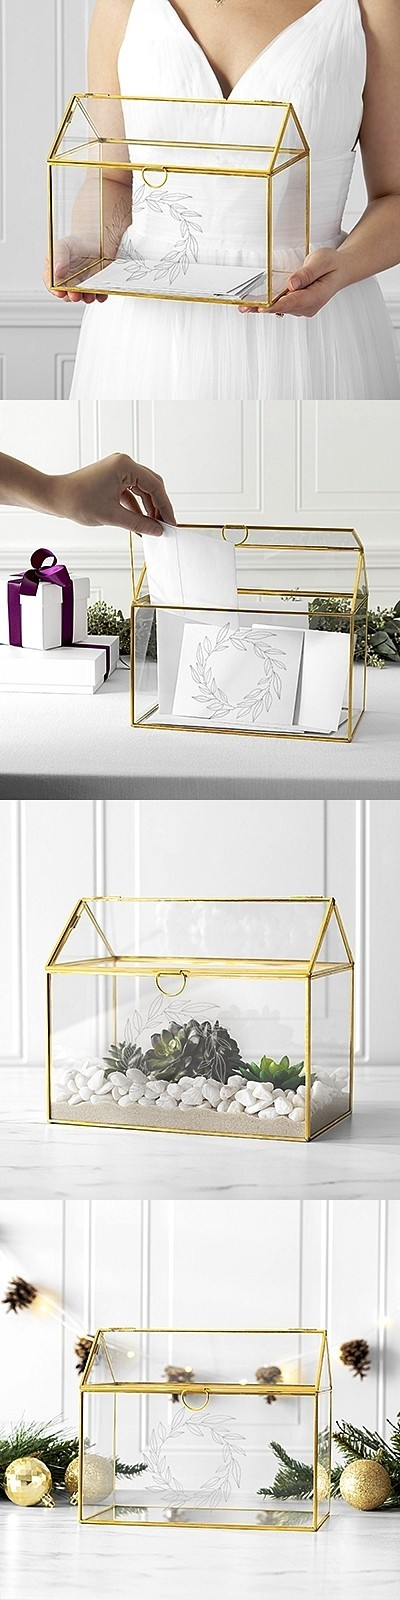 Cathy's Concepts Wreath Design Glass Terrarium Gift Card Holder in Gold